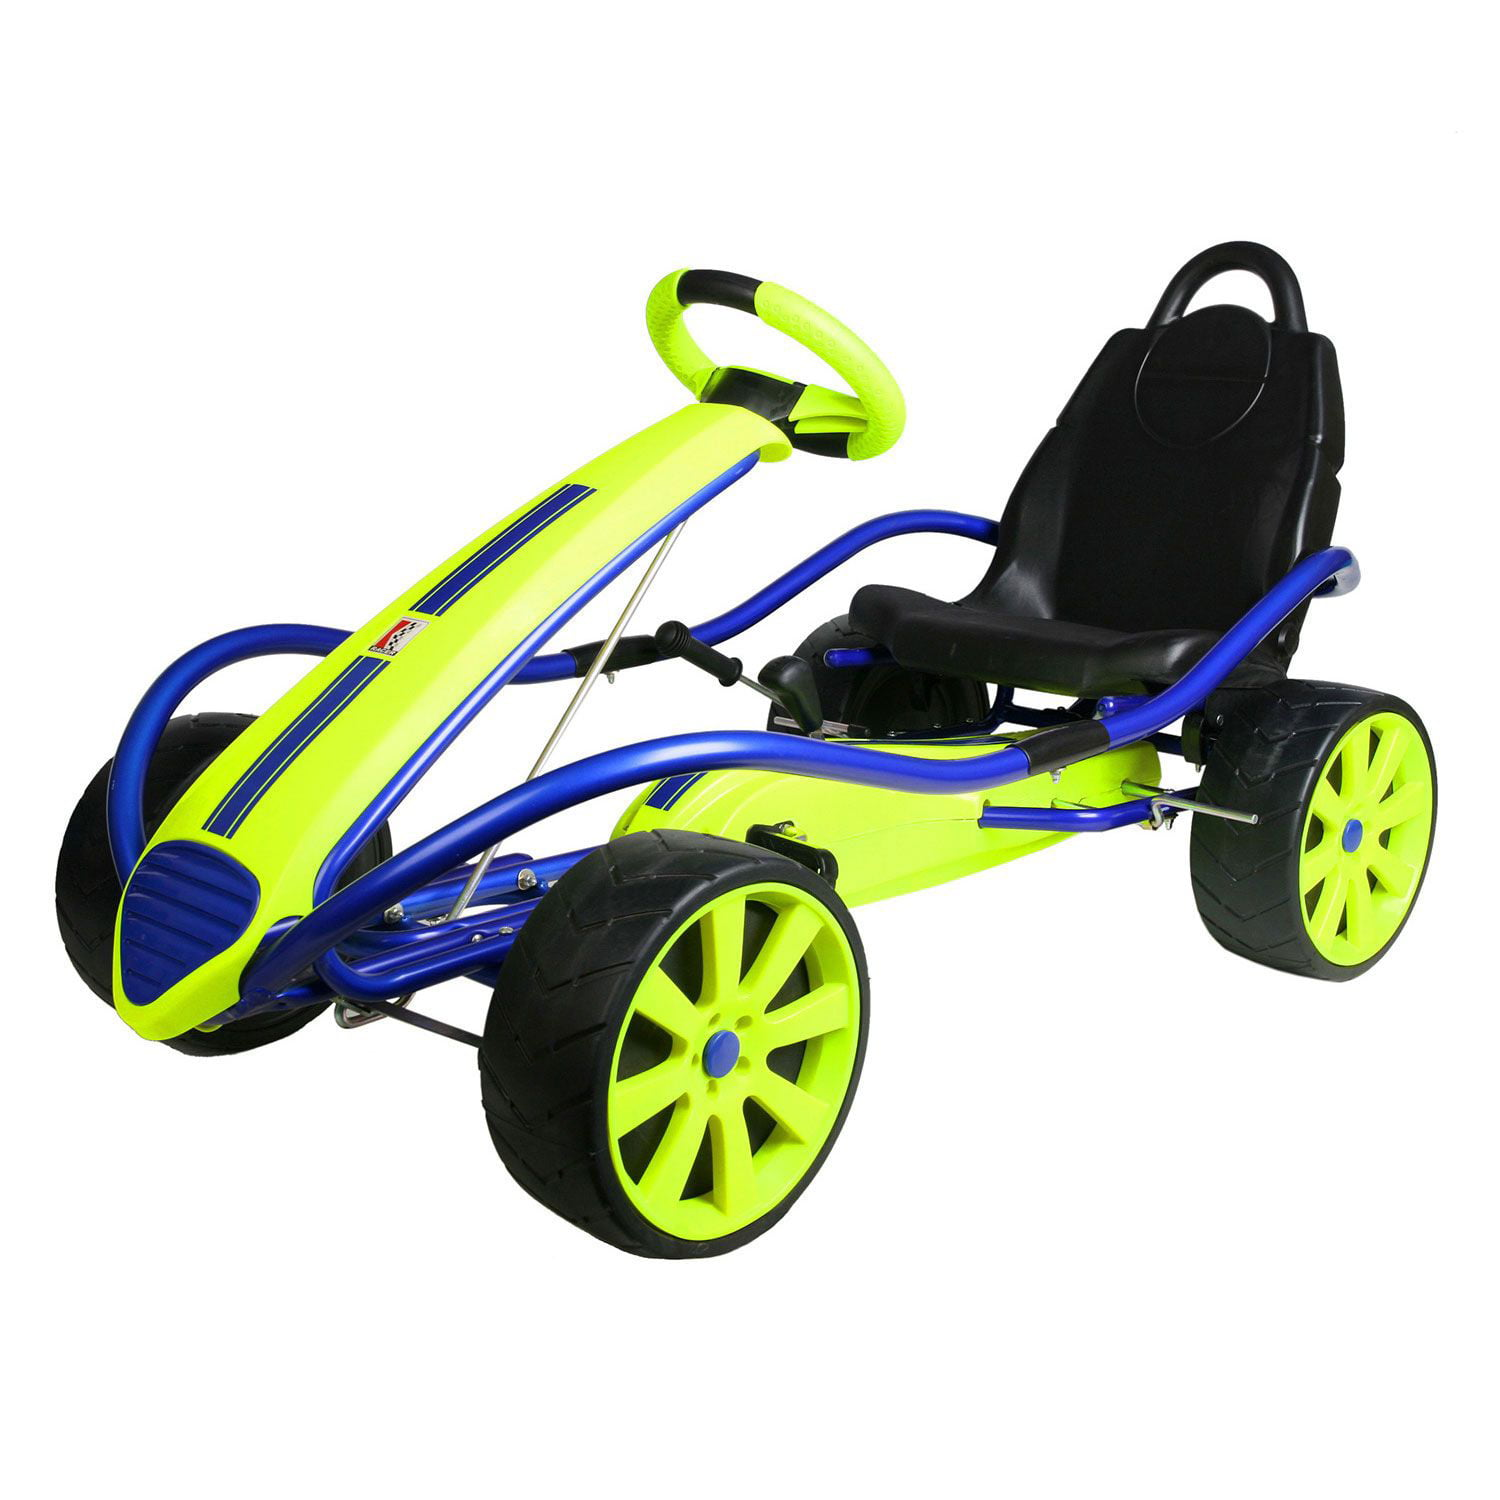 Kettler Sport Kid Racer Pedal Car Blue Yellow Walmart Com